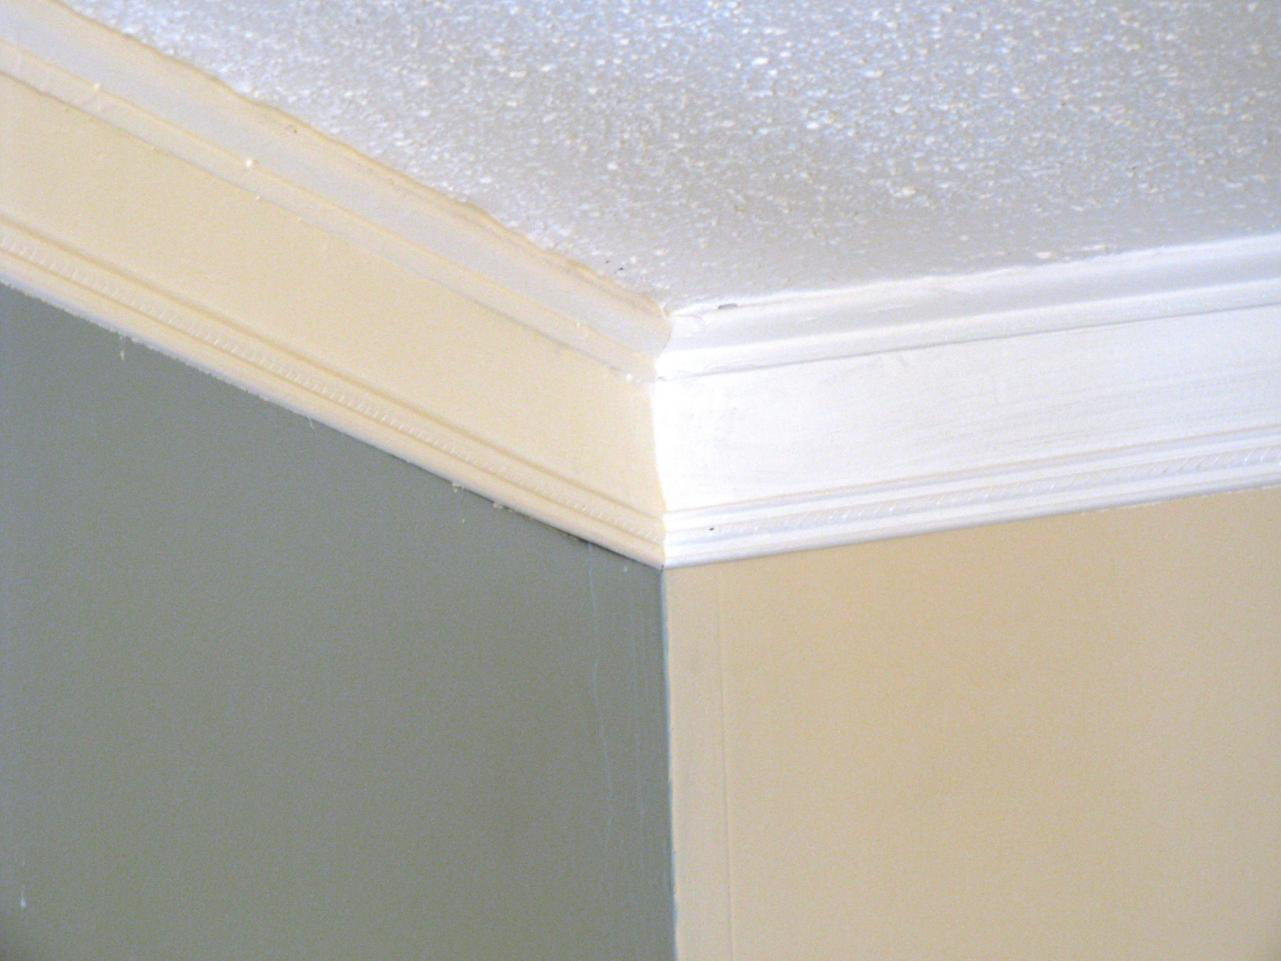 Create Faux Crown Molding